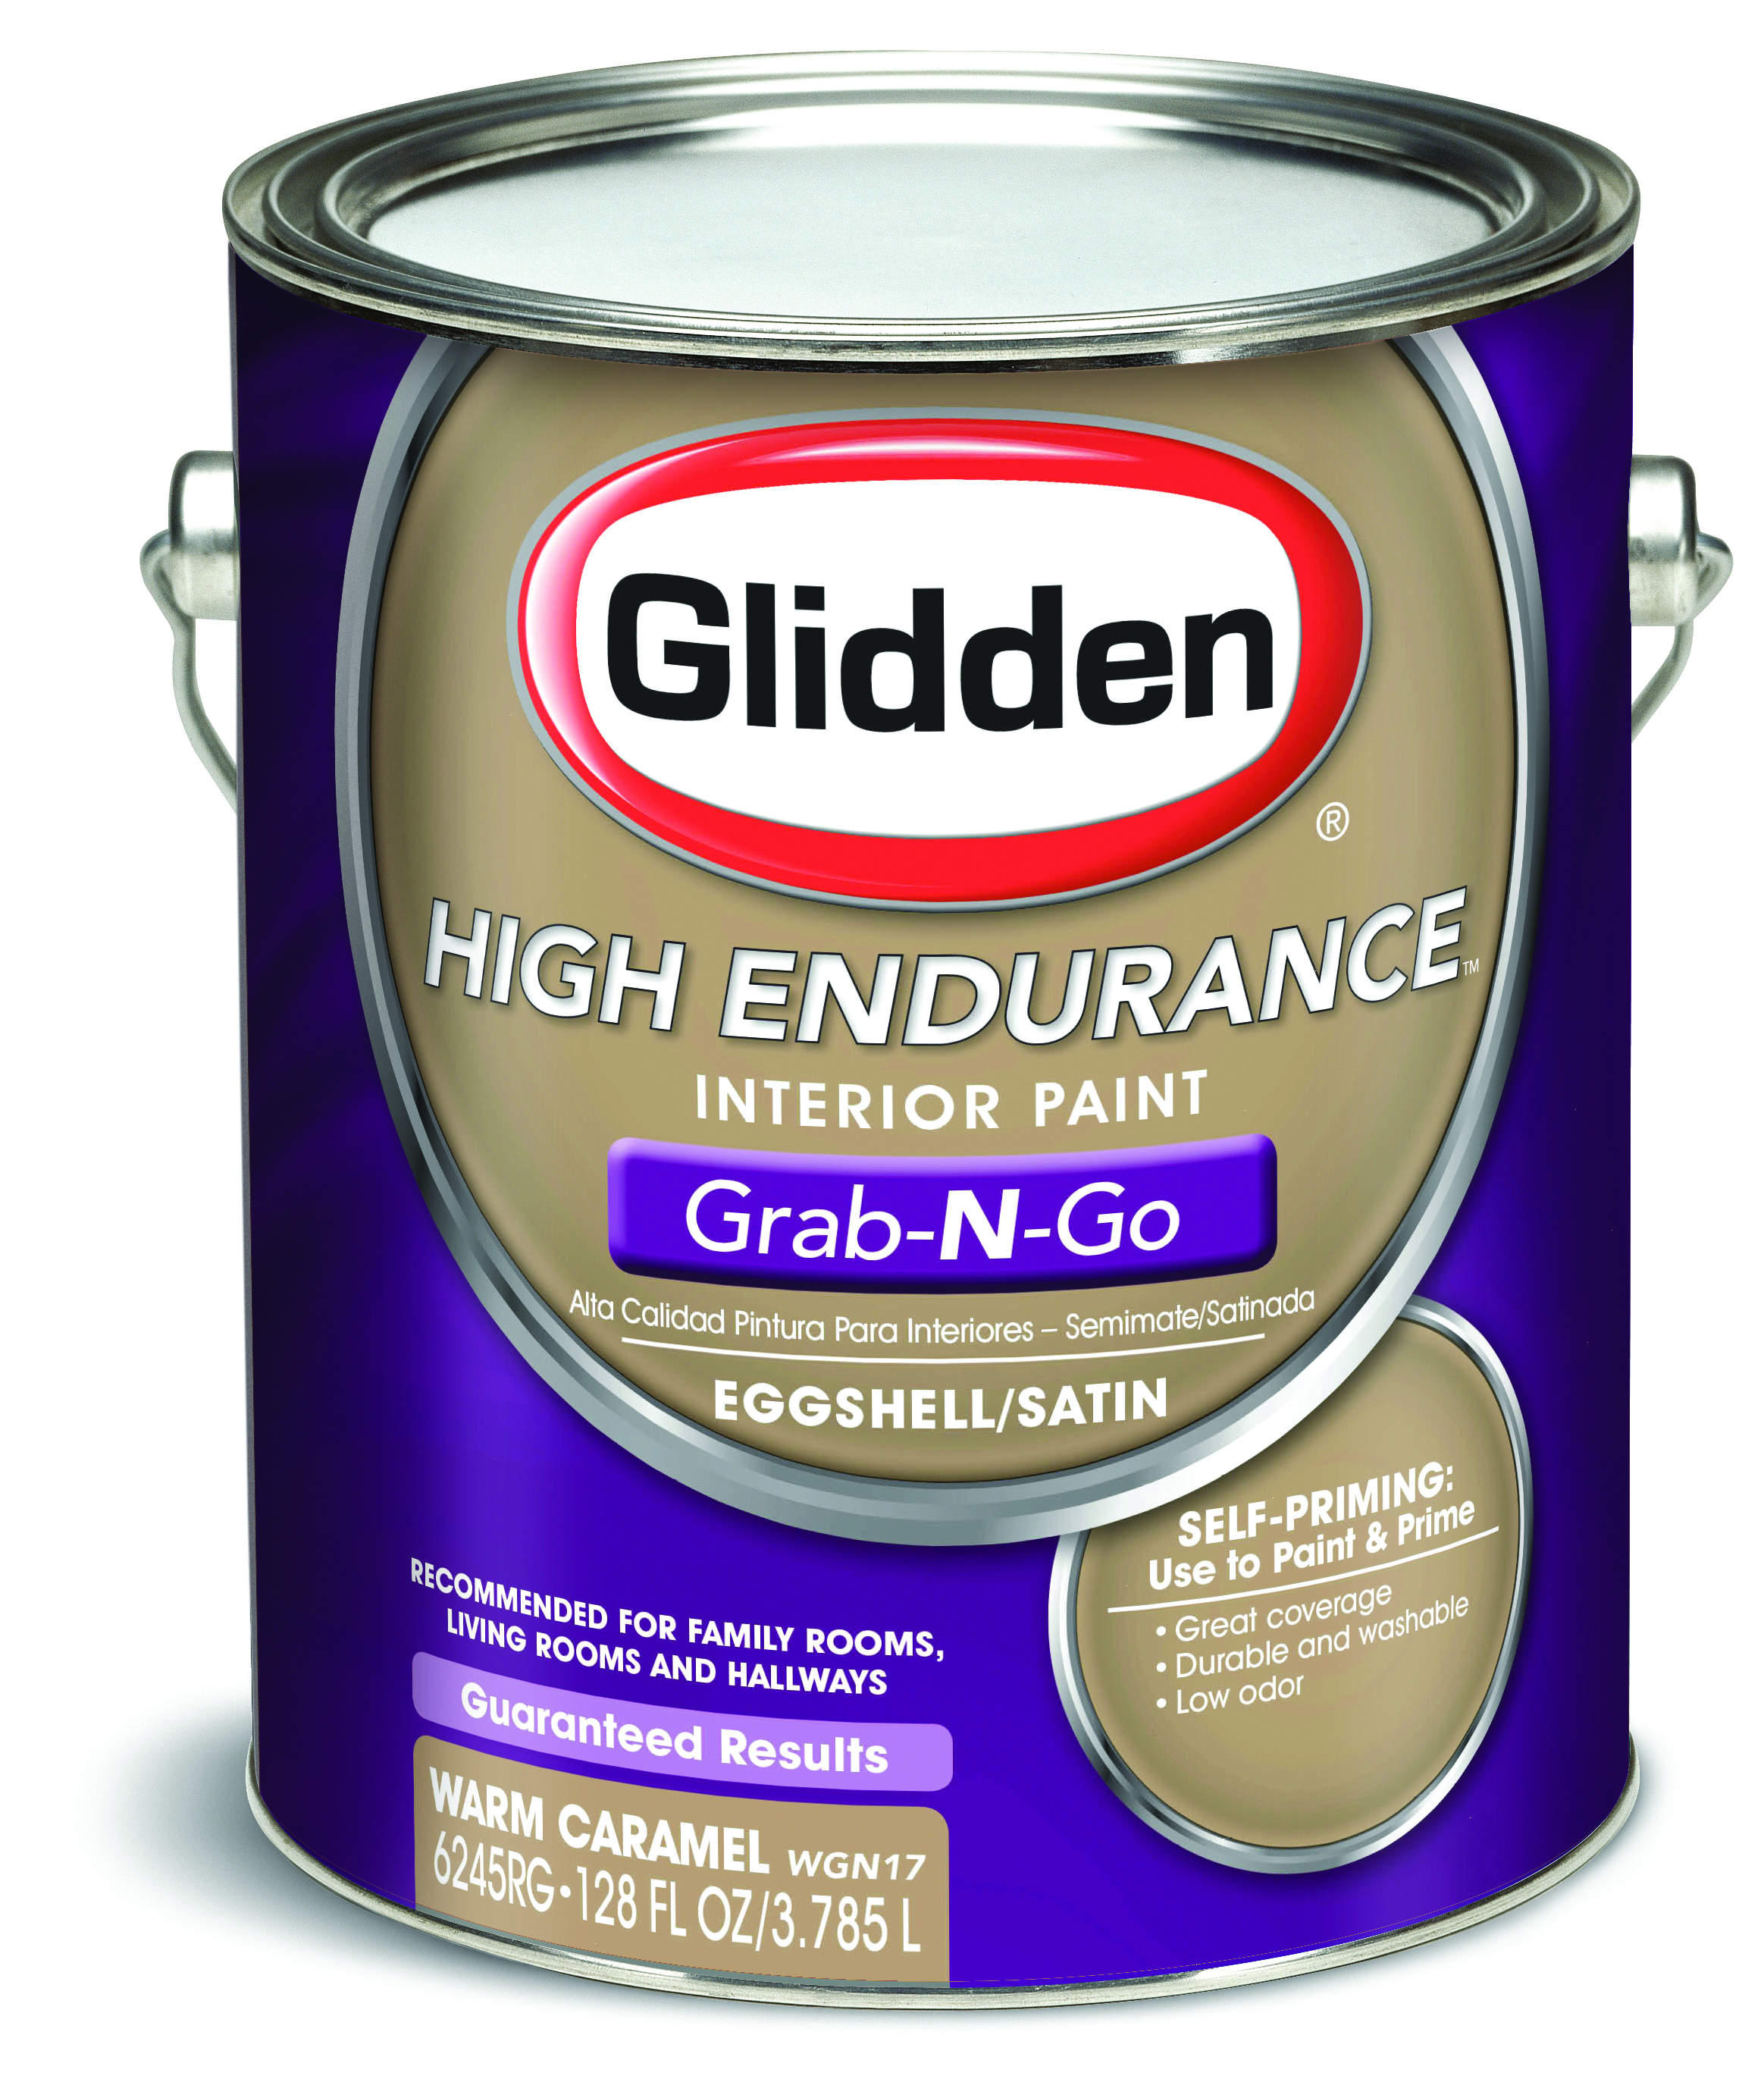 Cranberry Township Pa June 22 2015 The Wait Is Over At Least At The Walmart Paint Counter The New Glidden Grab N Go Paint Collection Has